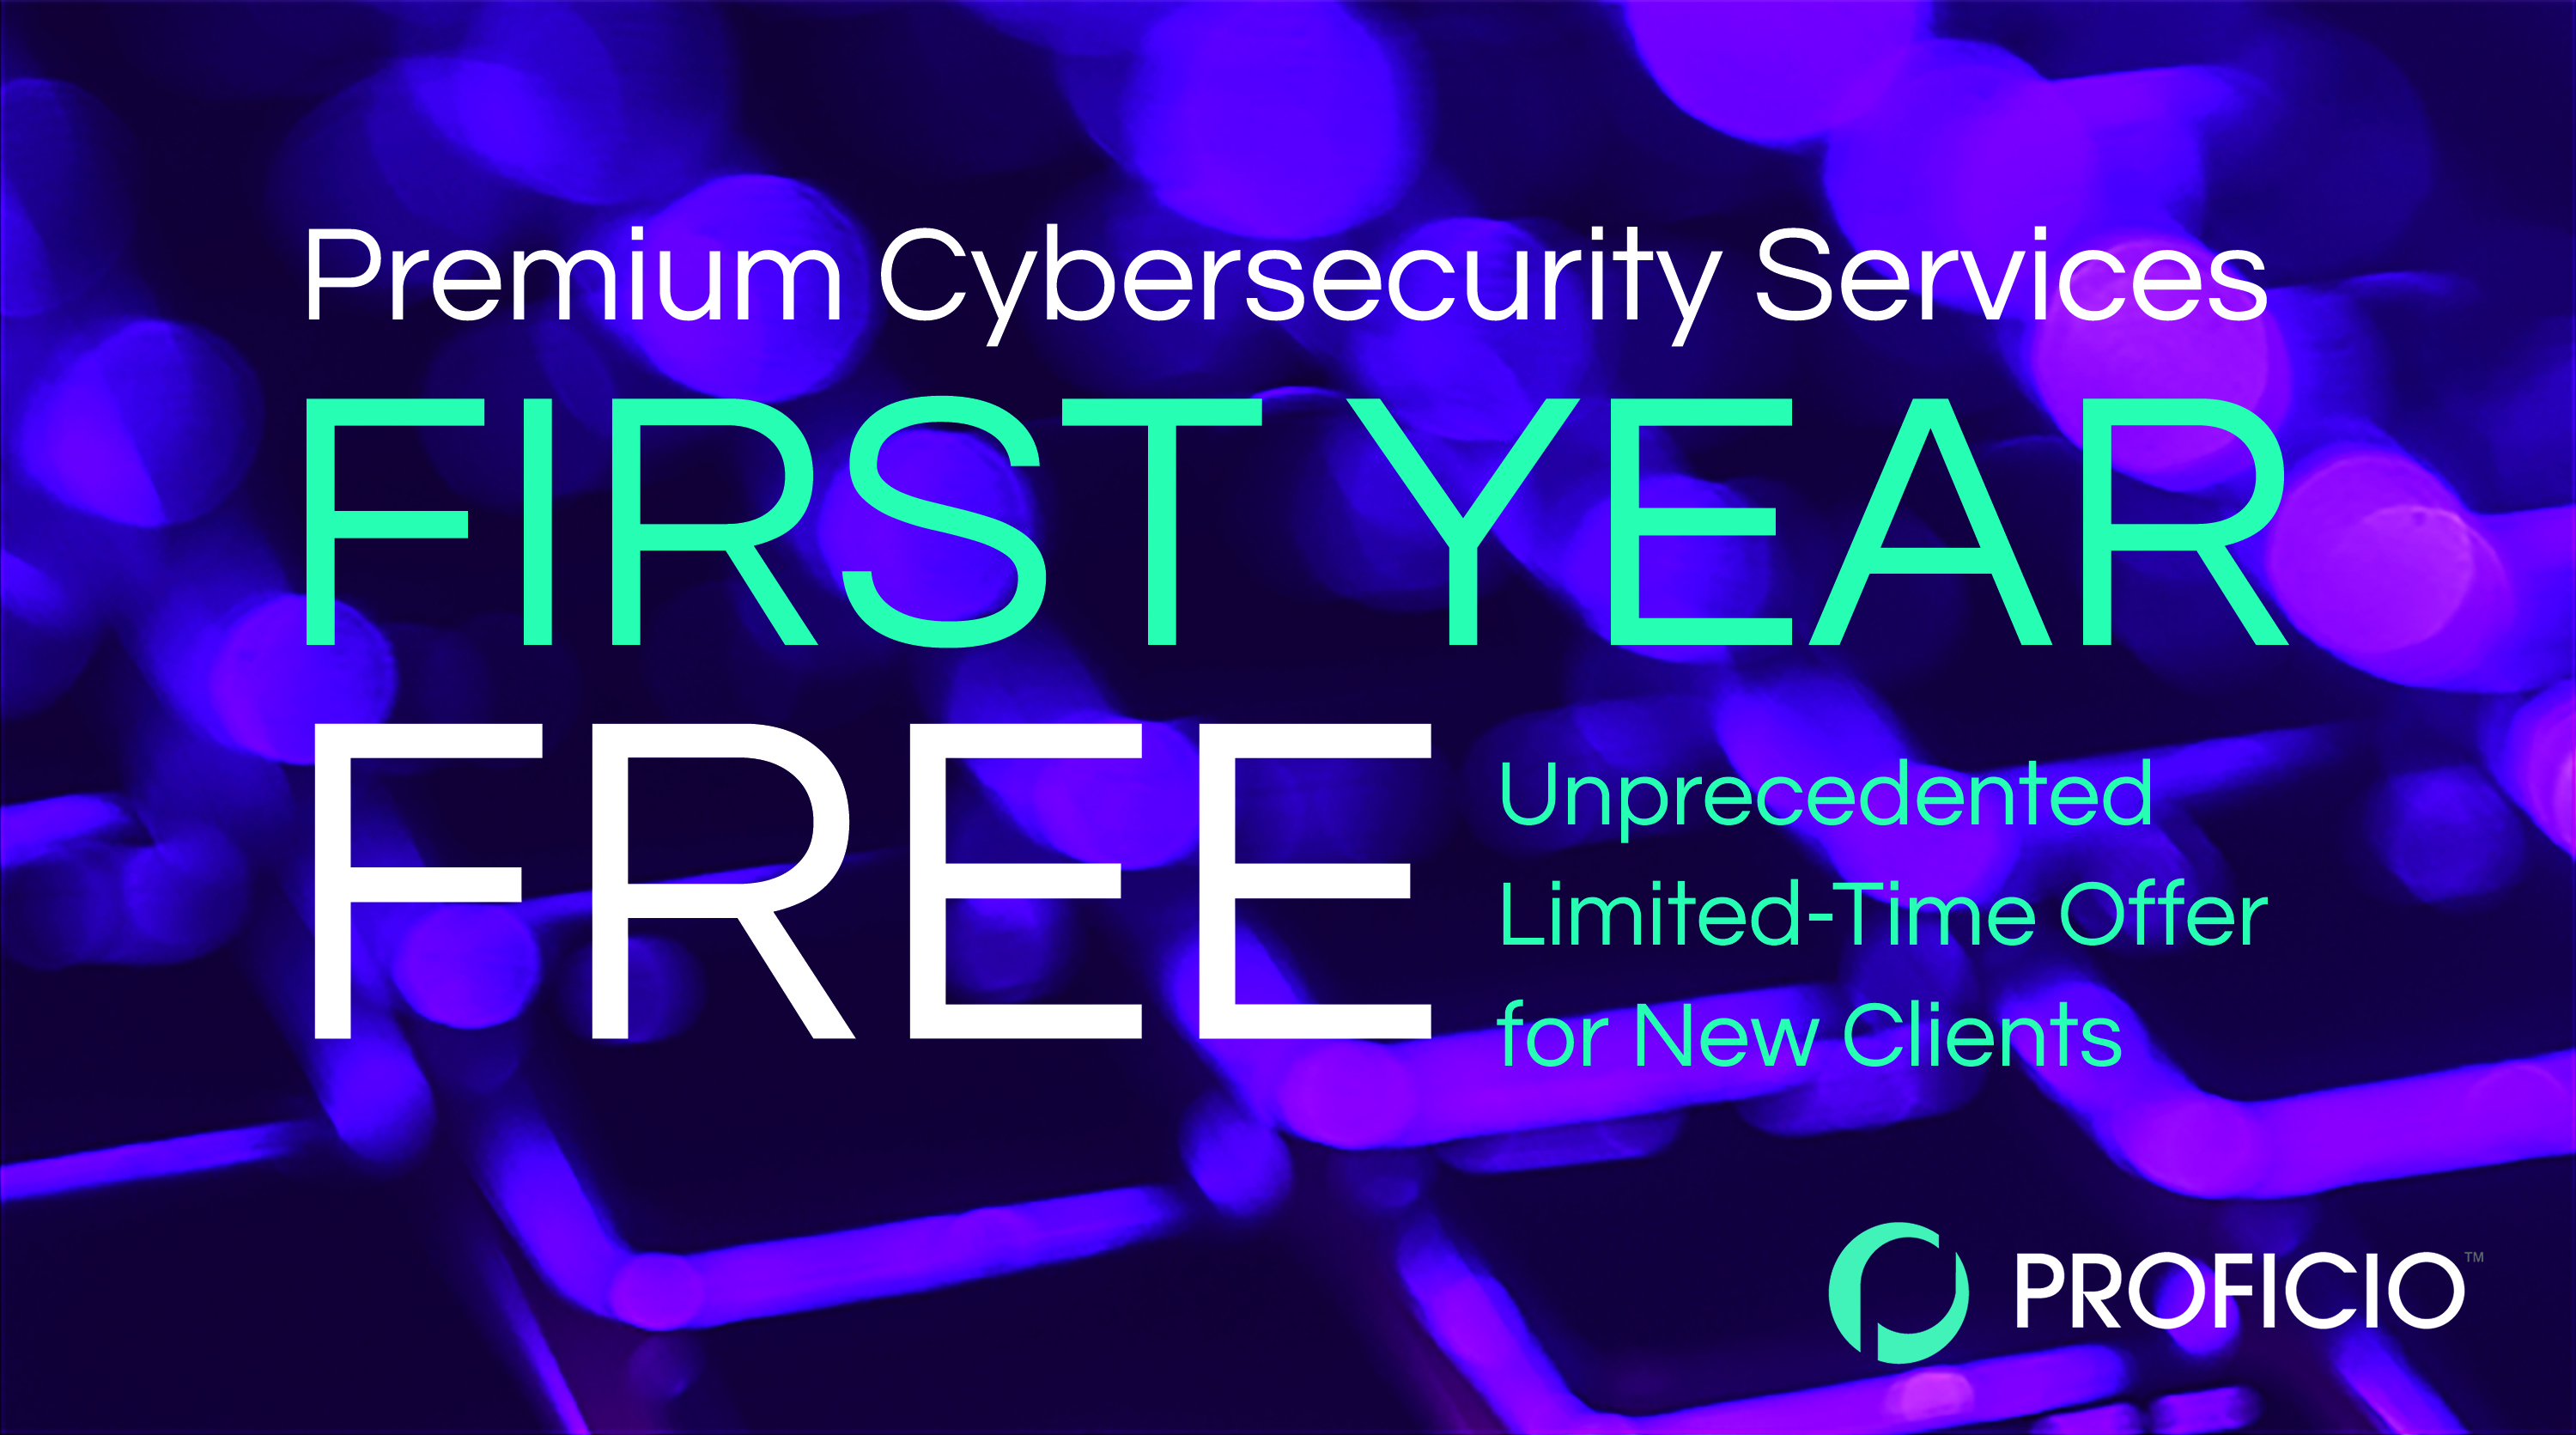 First Year Free Cybersecurity Services from Proficio